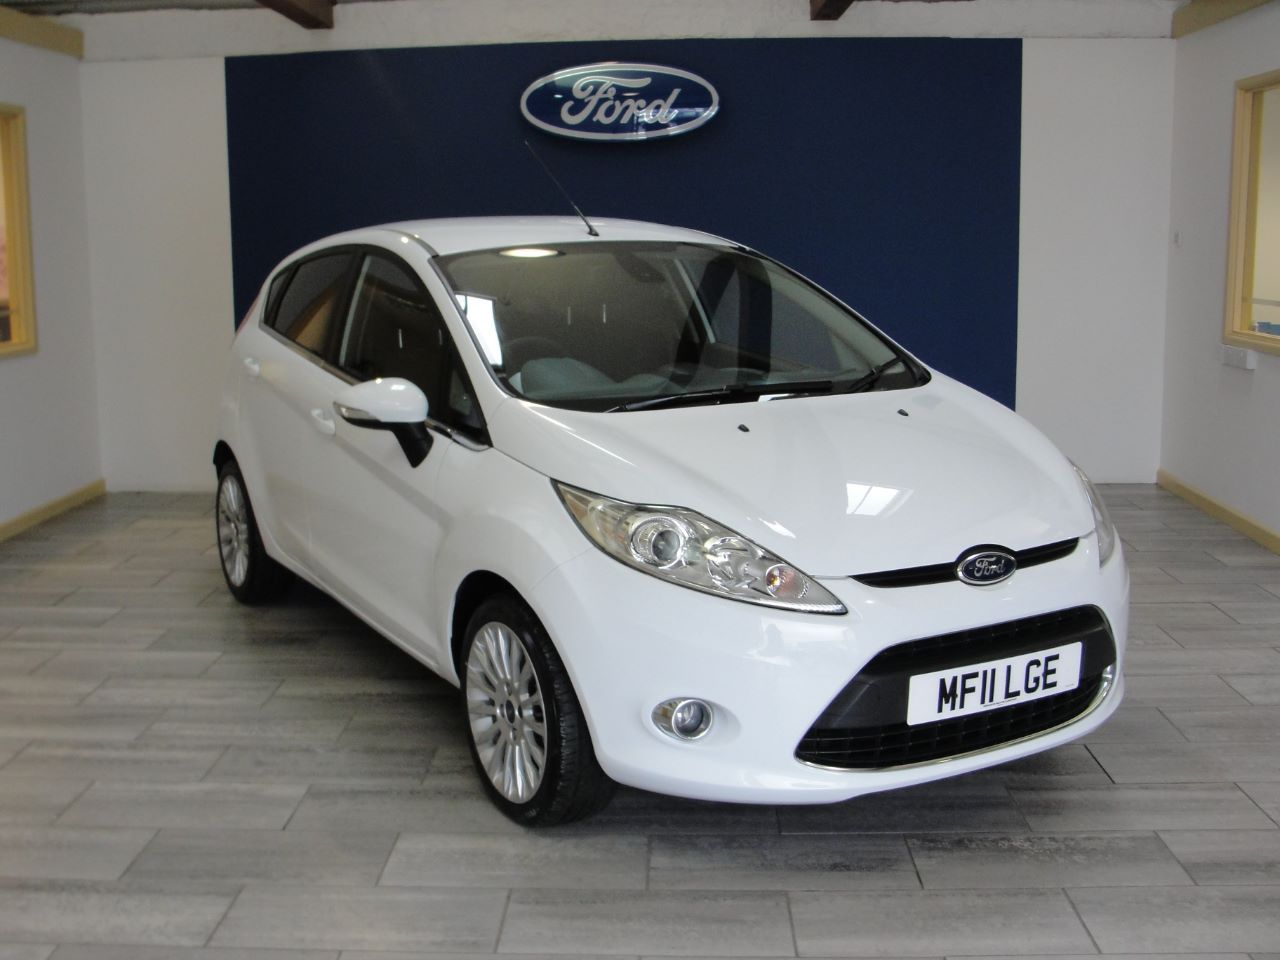 Ford Fiesta 1 4 Titanium 5dr Hatchback Petrol White Used Ford